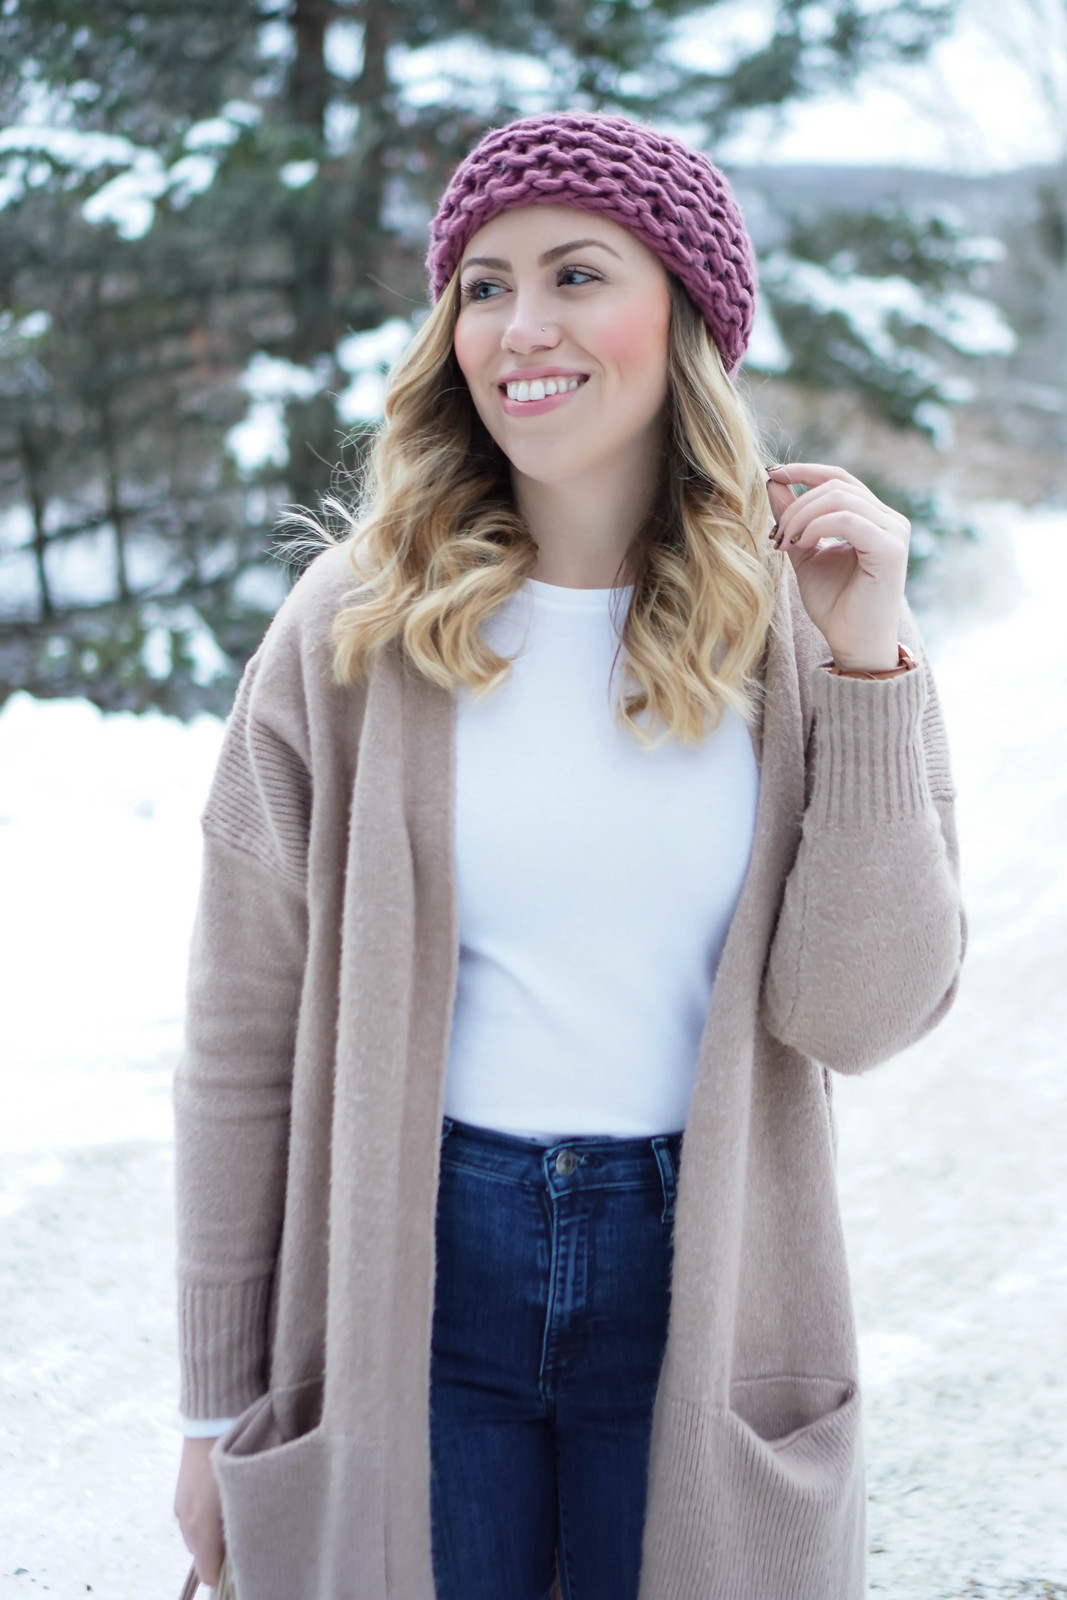 Casual Winter Pastel Outfit Pink Pom Pom Beanie and Camel Oversized Sweater Gap High Waisted Jeans